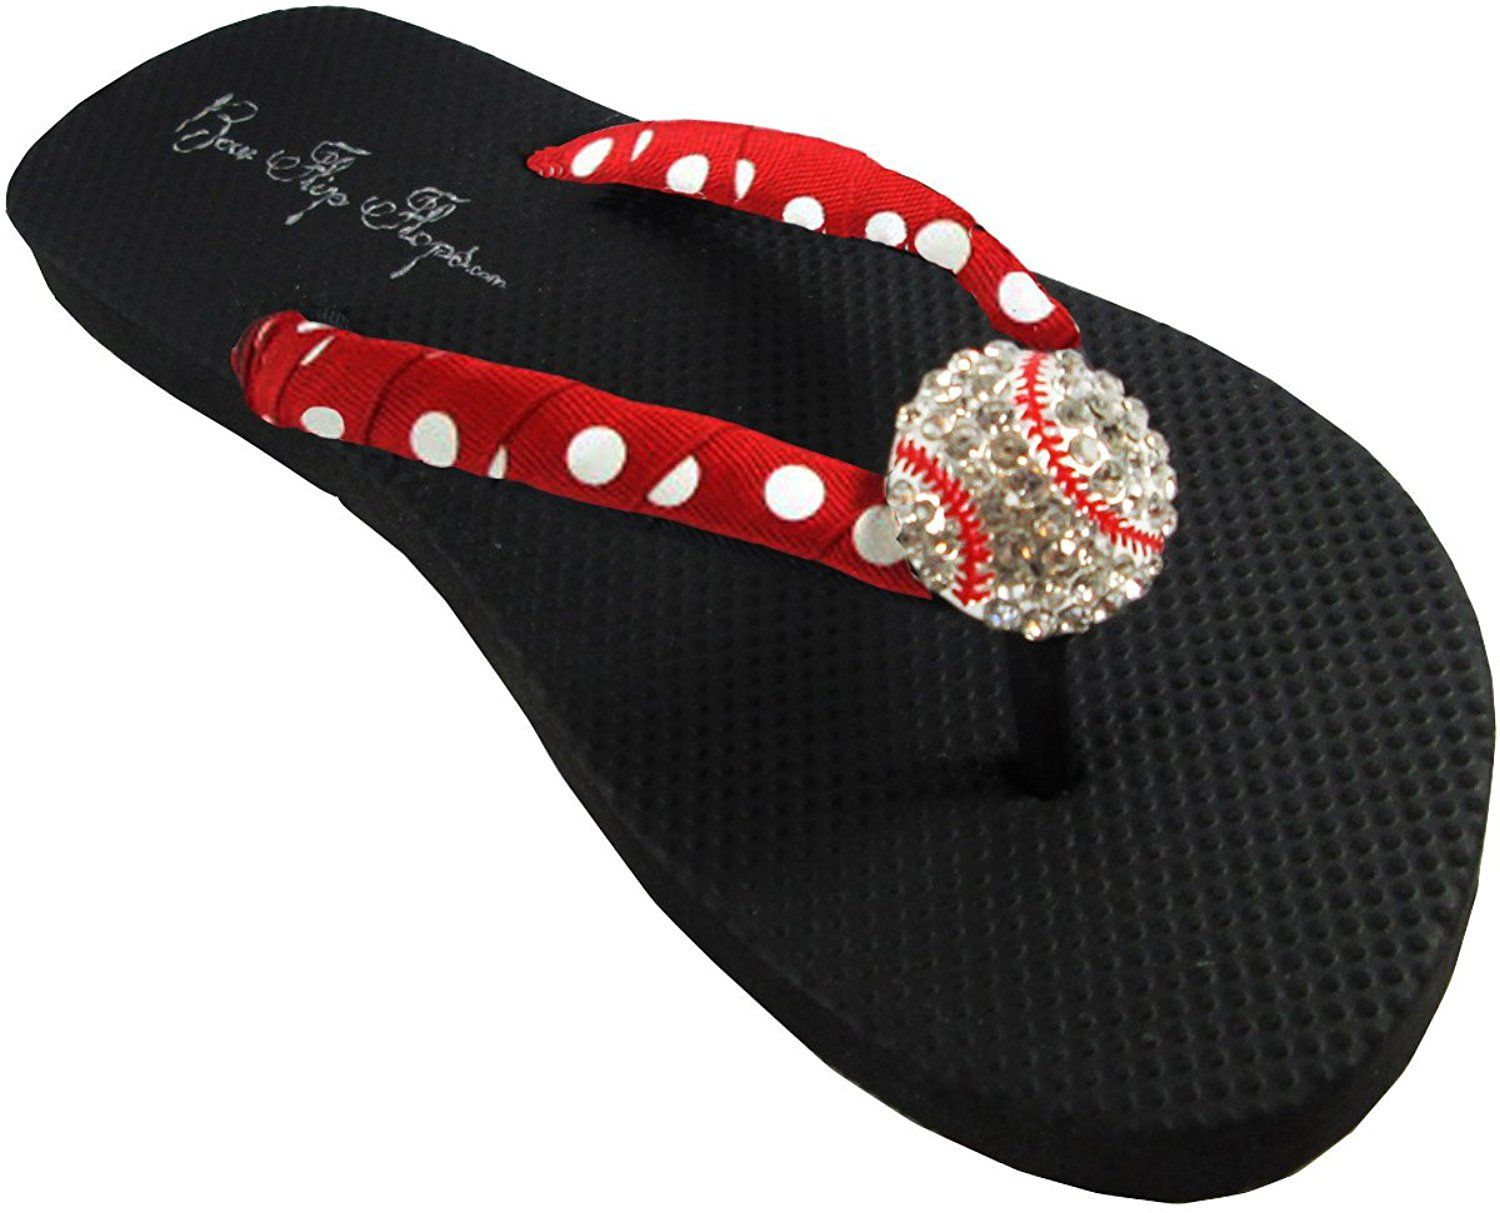 ed321d55c4d5 Baseball Flip Flops with Rhinestone Bling Sandals -- Want to know more